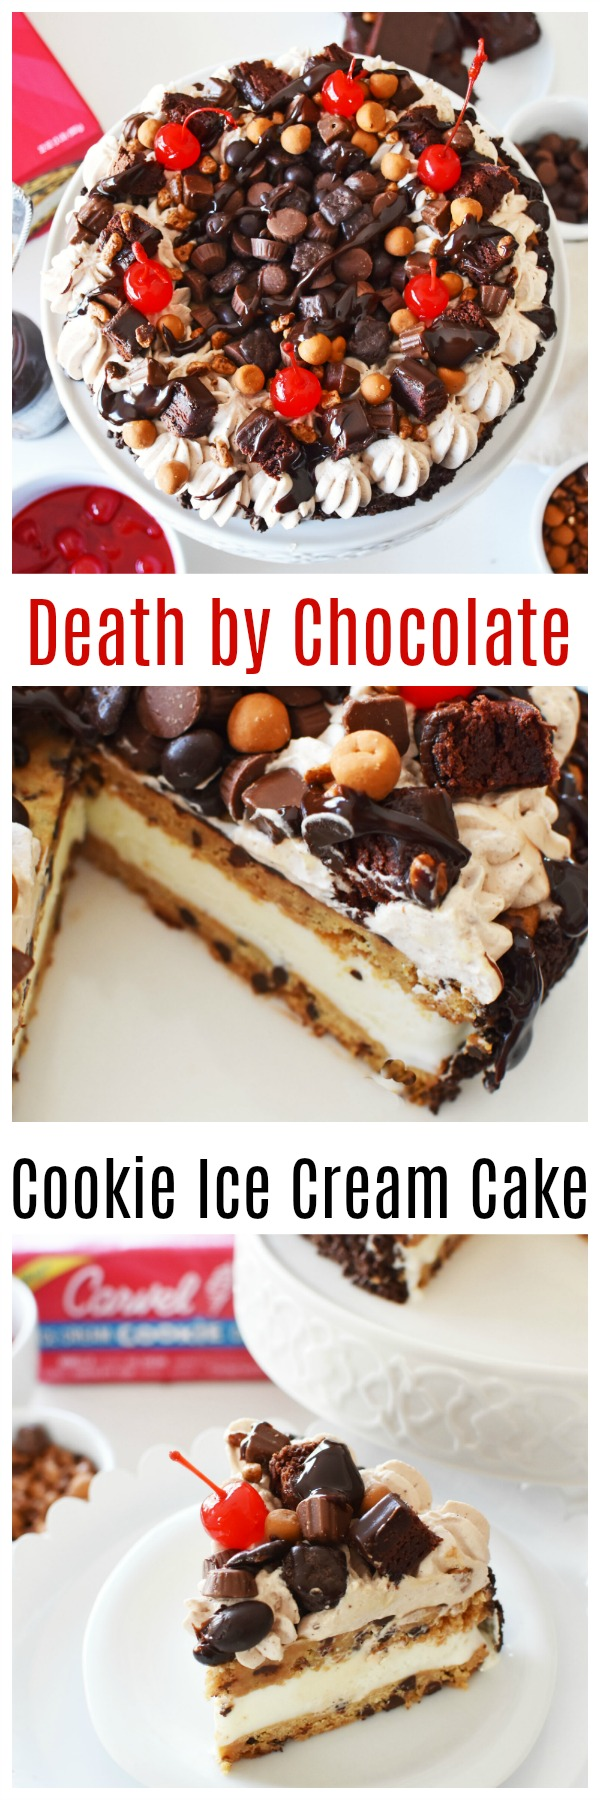 Death By Chocolate Ice Cream Cookie Cake-A tasty, chocolately, frozen ice cream cake dessert that is fairly easy to customize and enjoy this summer! #SummerCakeBreak Personalize this cookie ice cream cake with cocoa whipped cream, chocolate candy pieces and more! AD